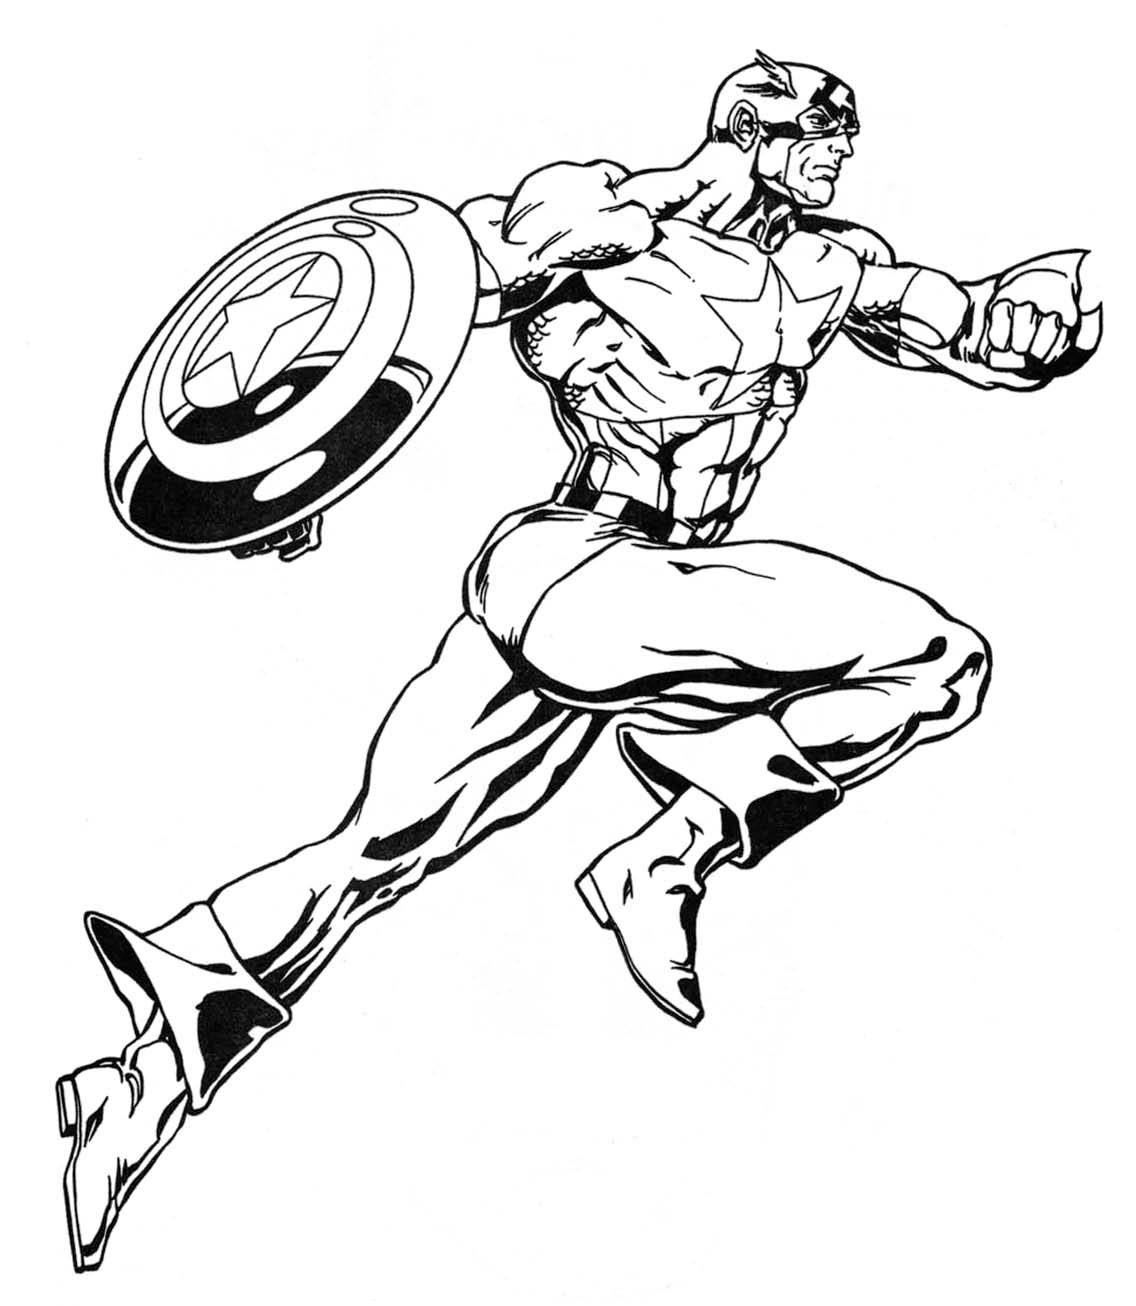 marvel coloring marvel coloring pages free download on clipartmag coloring marvel 1 2